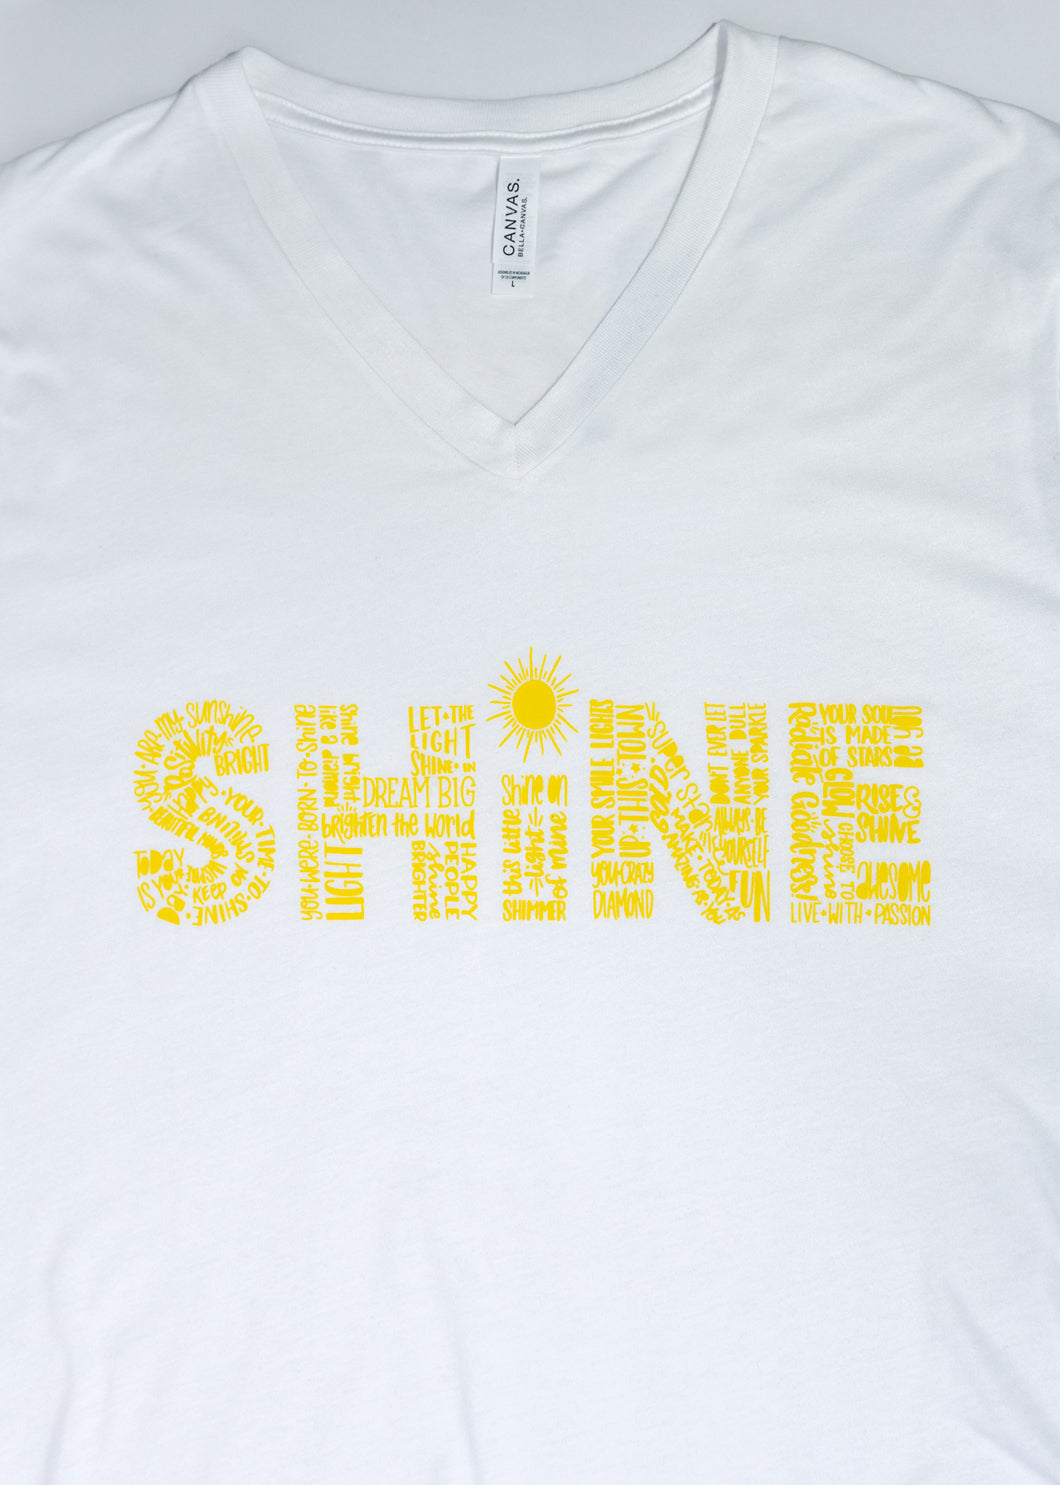 Short Sleeved White SHINE shirt